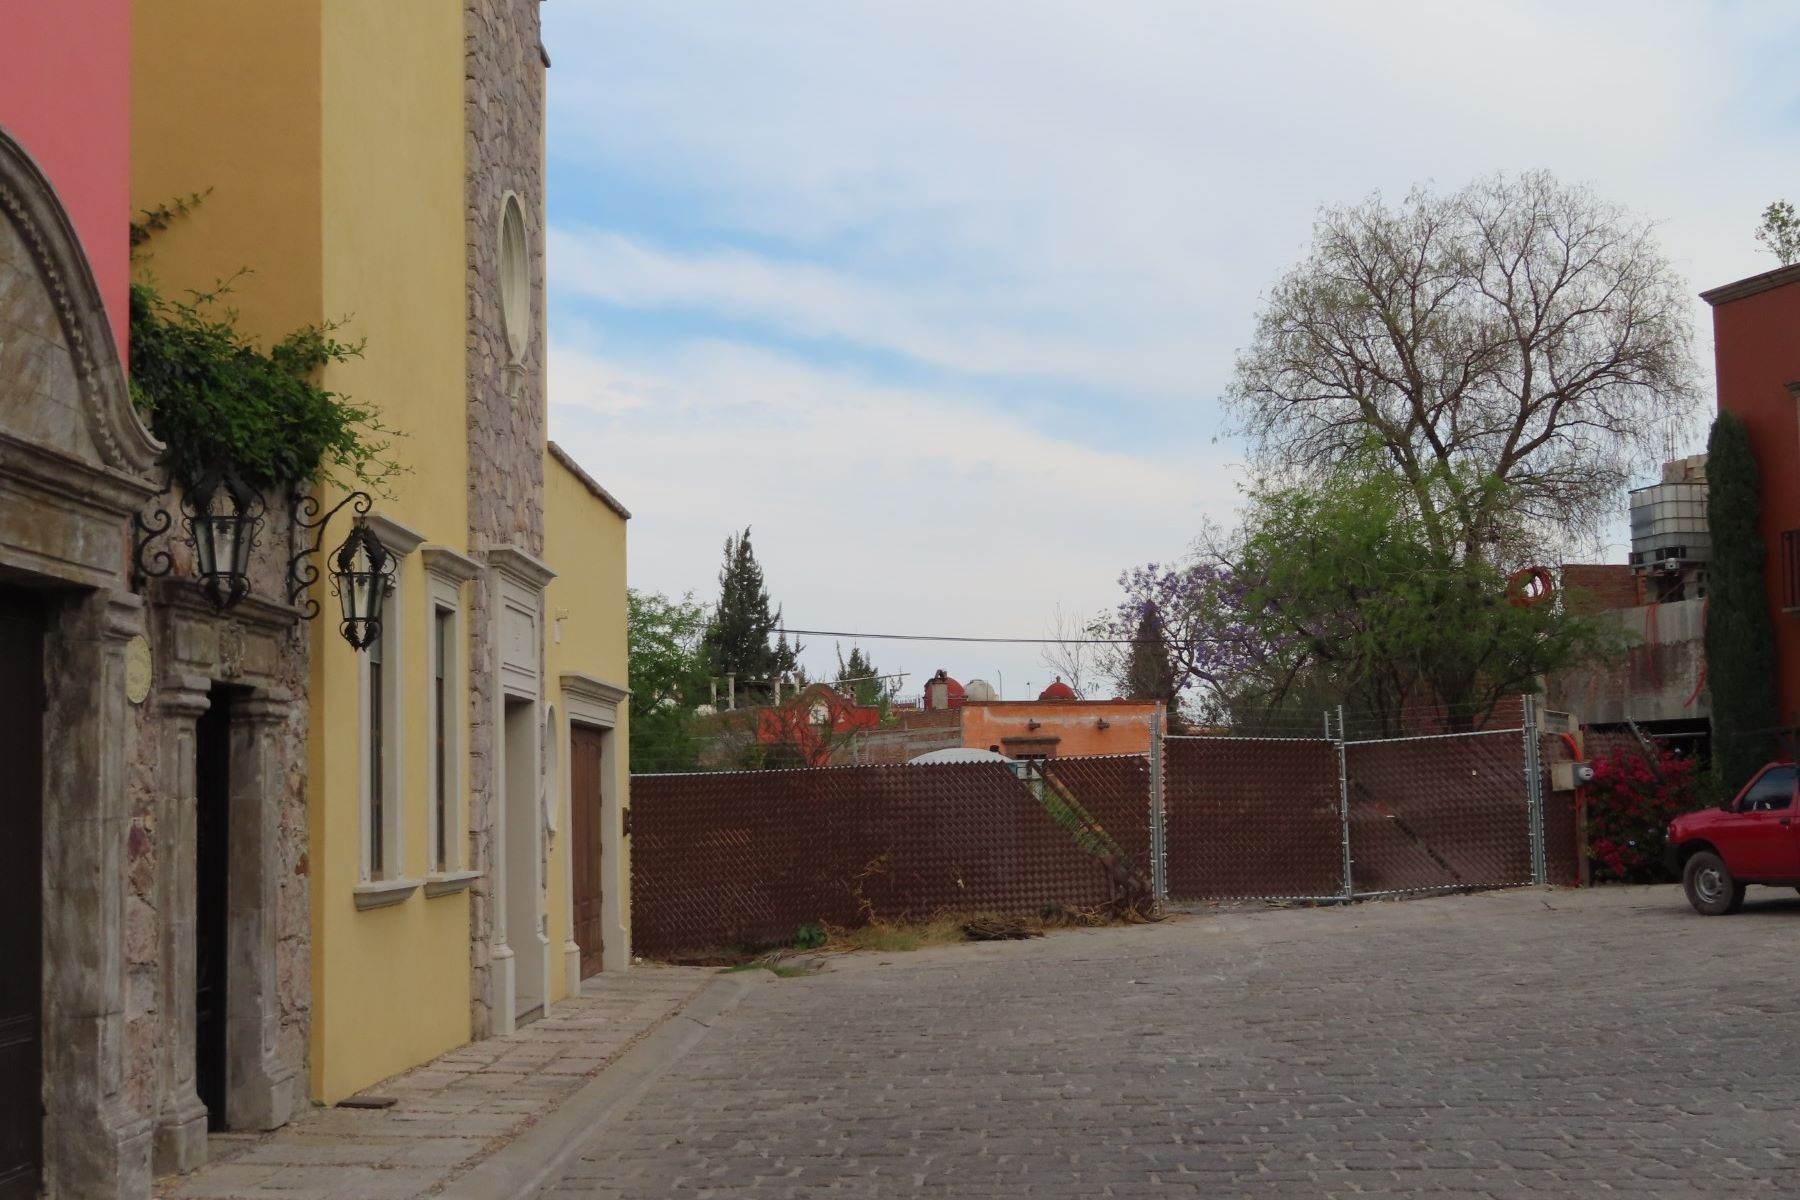 Property for Sale at Quiote Lot 2 Cerrada de Grillo - Lot 2 San Miguel De Allende, Guanajuato 37710 Mexico